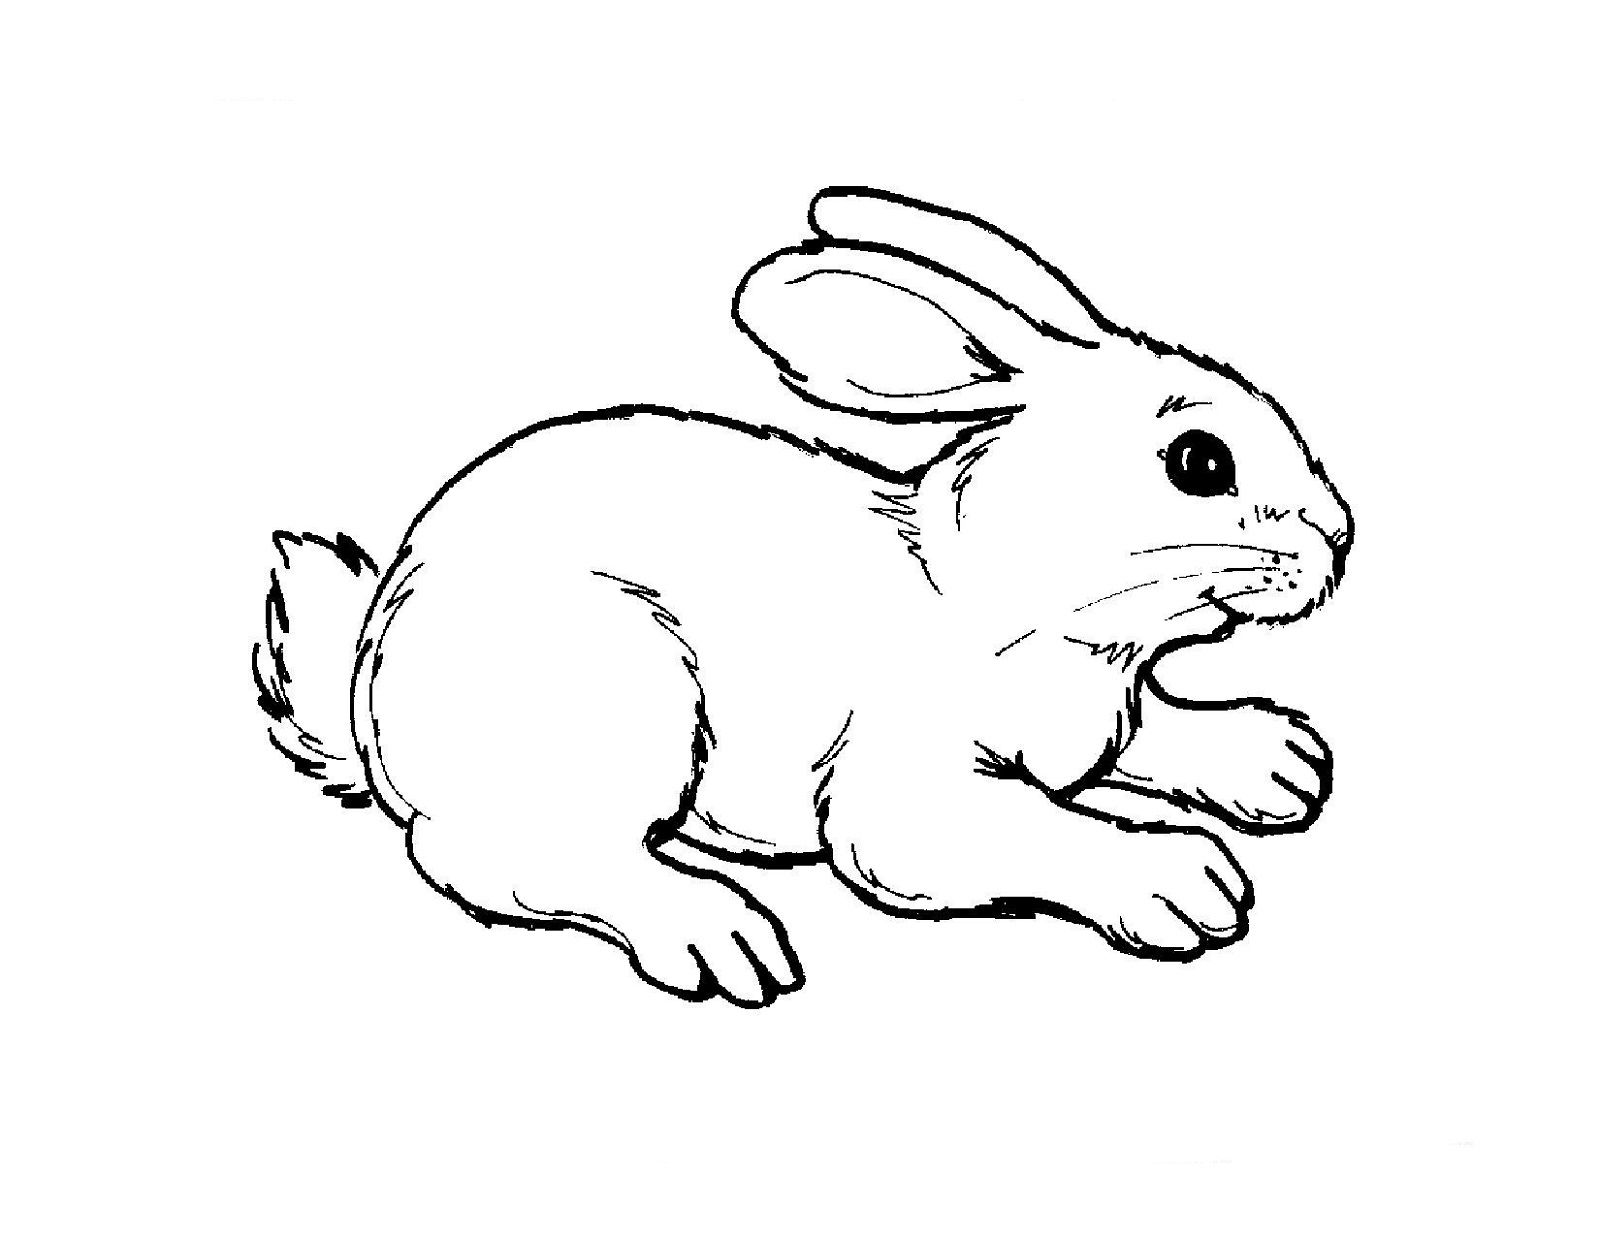 Favorite Coloring Pictures For Children In 2021 Farm Animal Coloring Pages Animal Coloring Books Animal Coloring Pages [ 1236 x 1600 Pixel ]